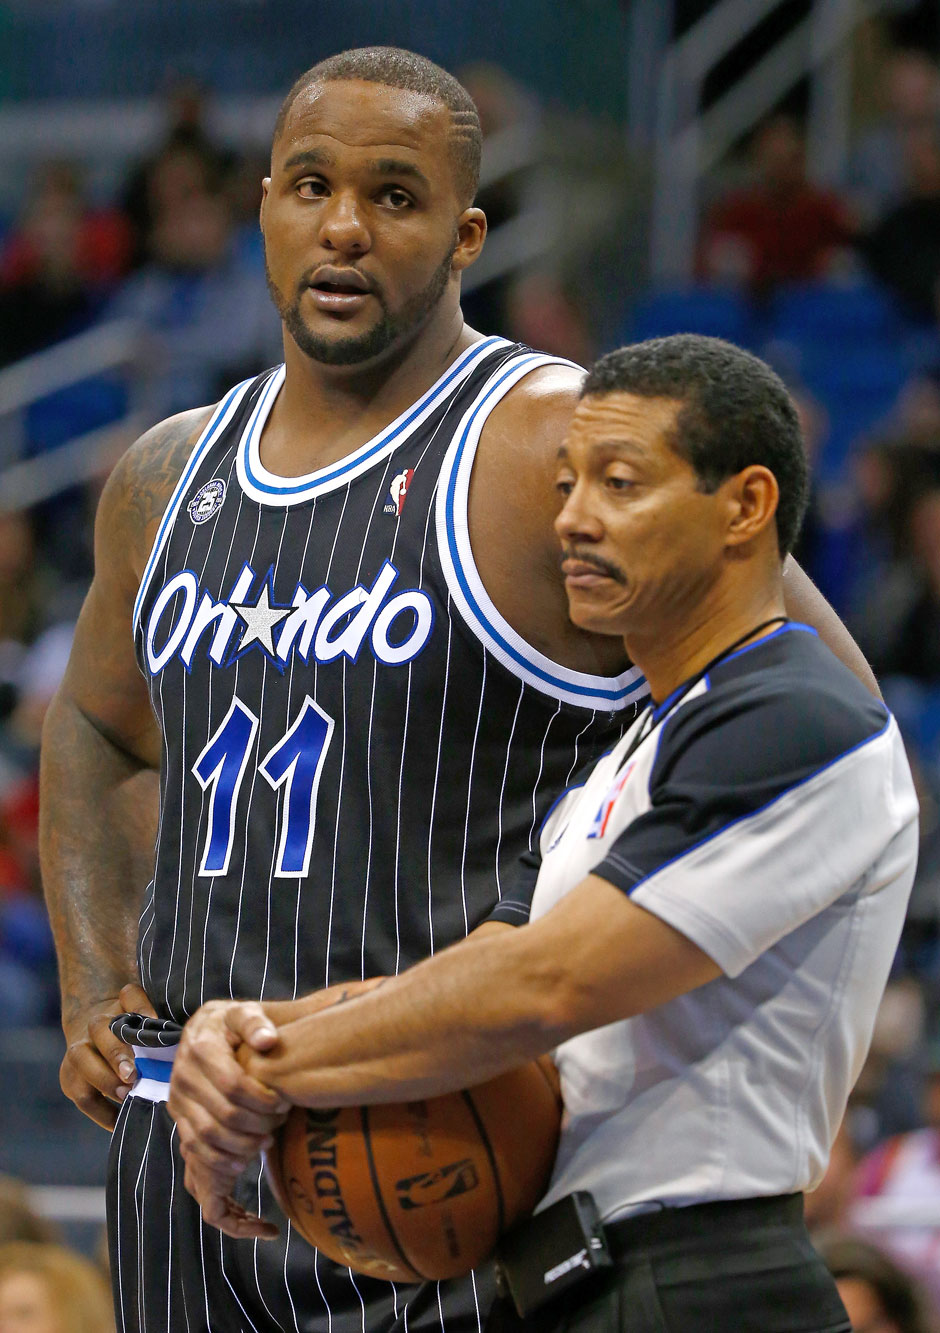 Center: Glen Davis (13,3 Punkte, 7,1 Rebounds)